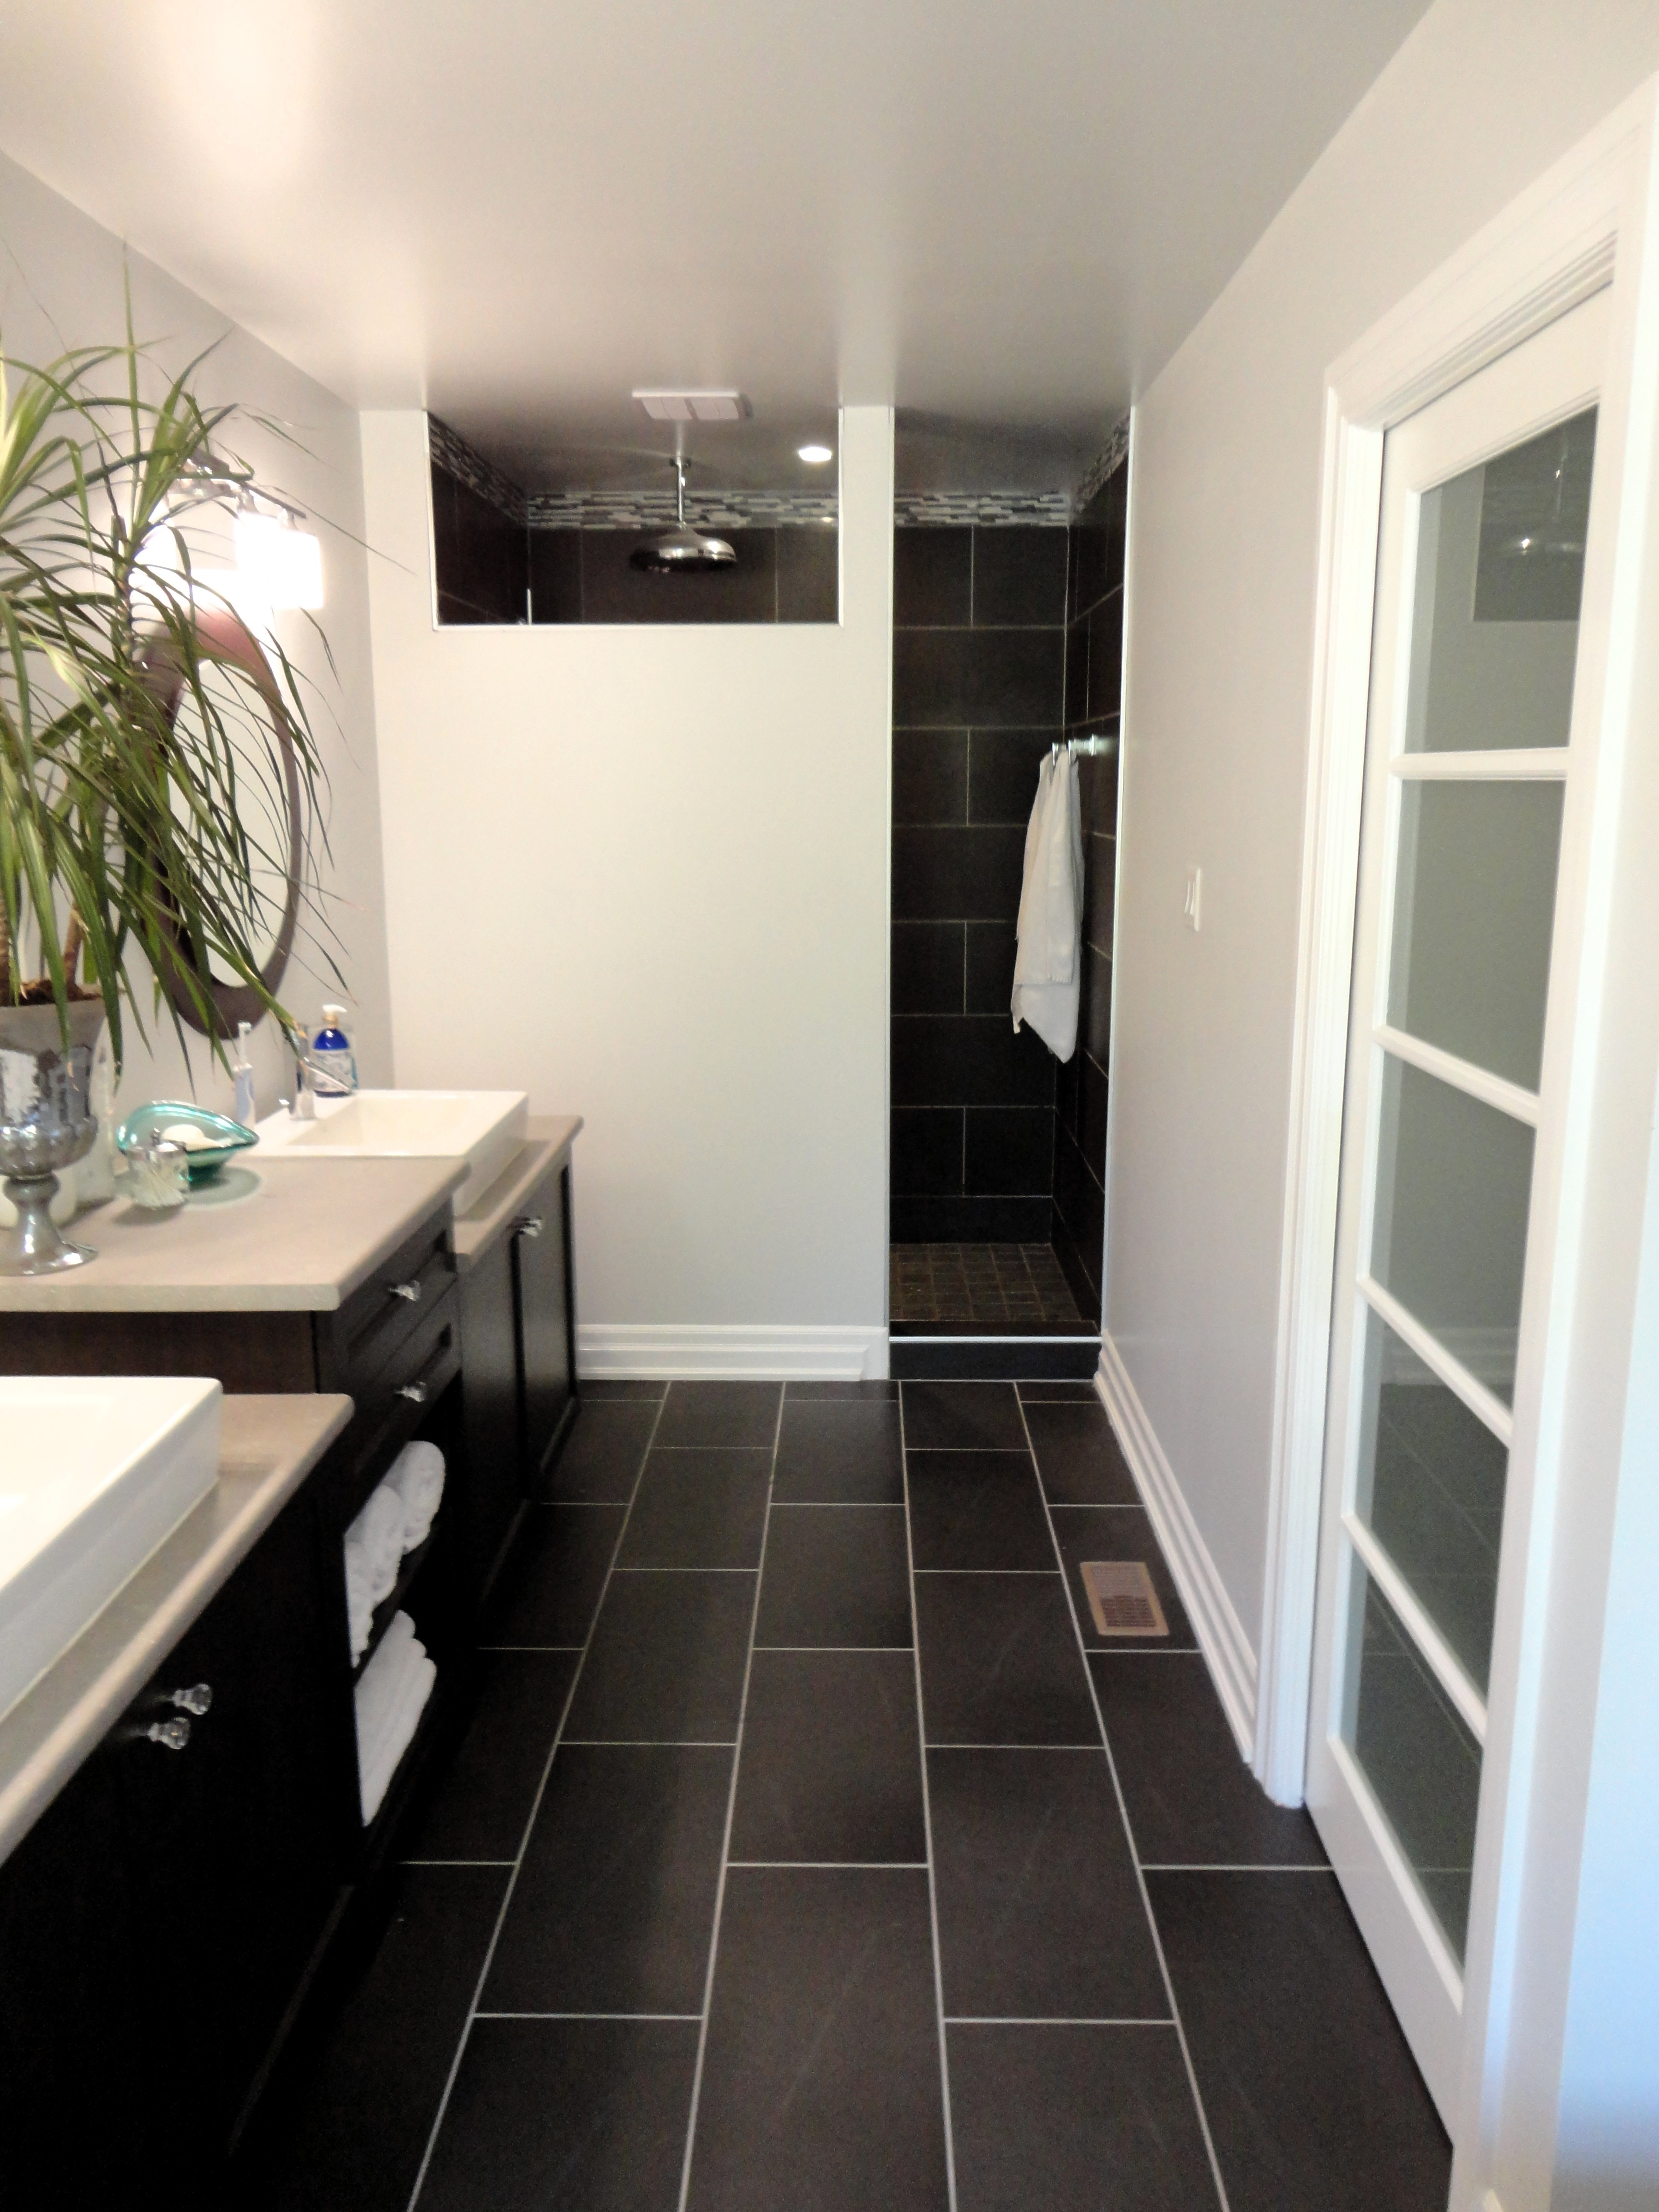 Bathroom Black And White Floor Tiles My Master Bathroom Modern And Budget Friendly